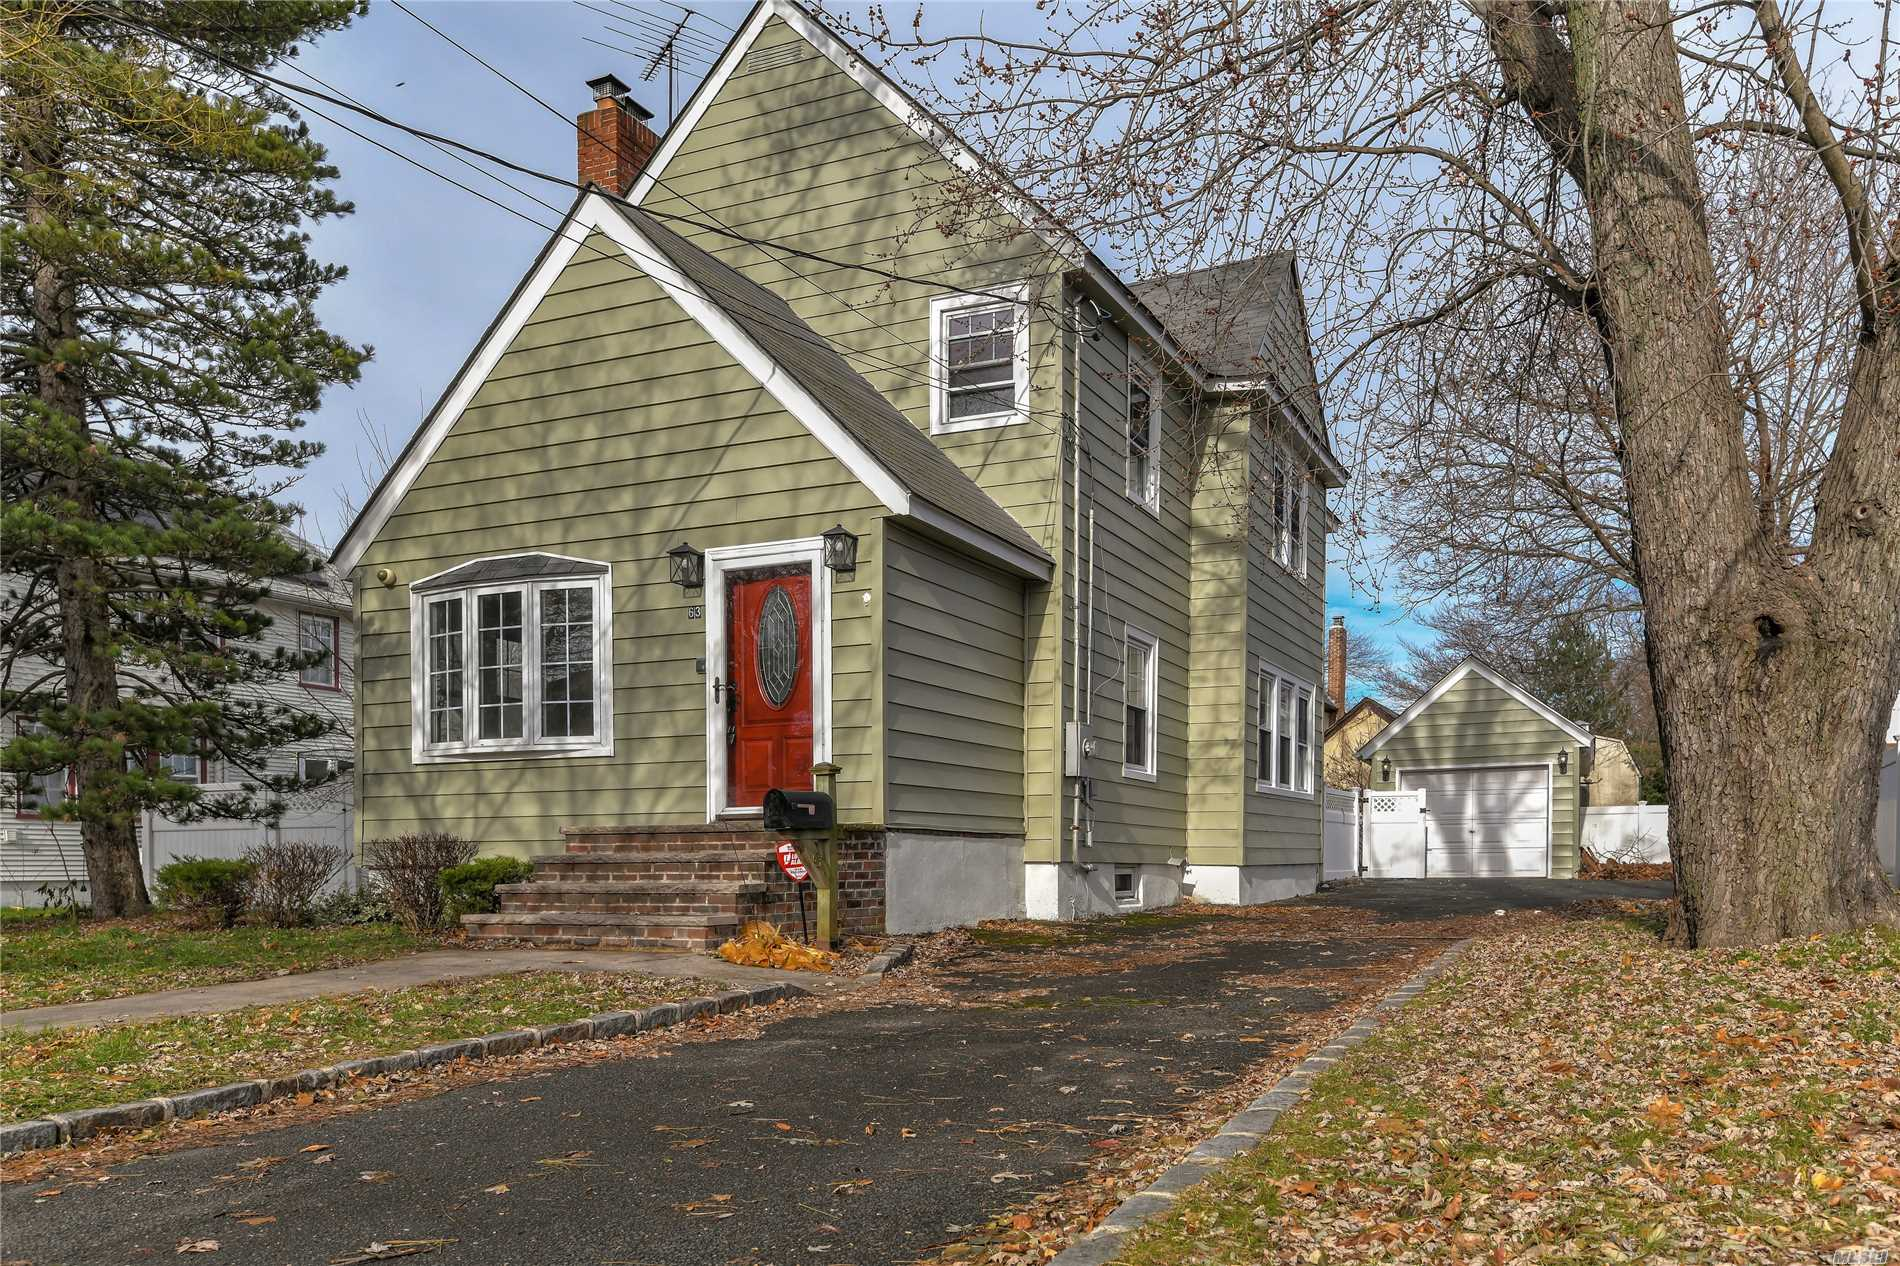 Beautiful Colonial , Close To All . Updated Kitchen With Granite , Cherrywood Cabinets And Stainless Steel Appliances . Large Formal Dining Room , Living Room With Fireplace . Finished Basement . Hardwood Floors To Be Refinished Shortly . 2 Blocks To School, 2 Minutes To Parkway